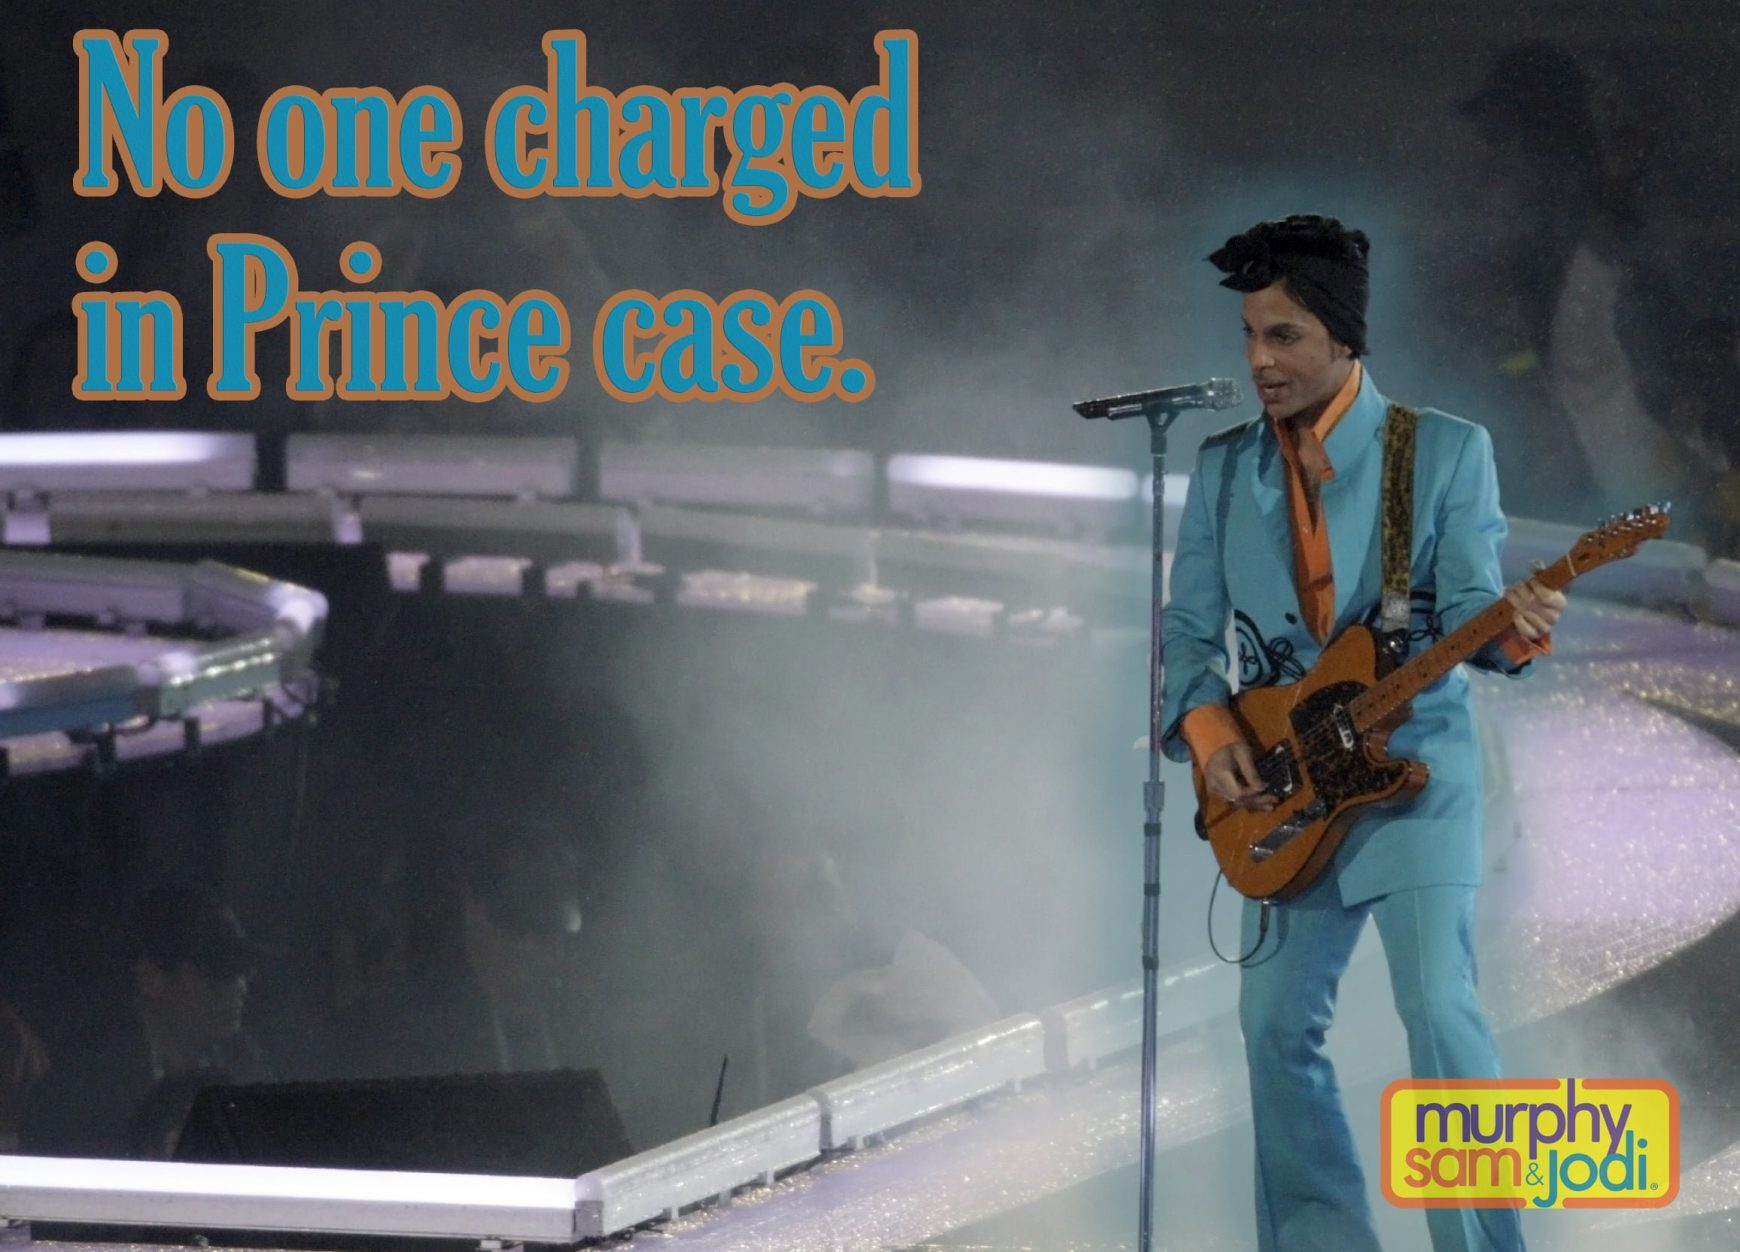 No Charges Filed in Prince Case